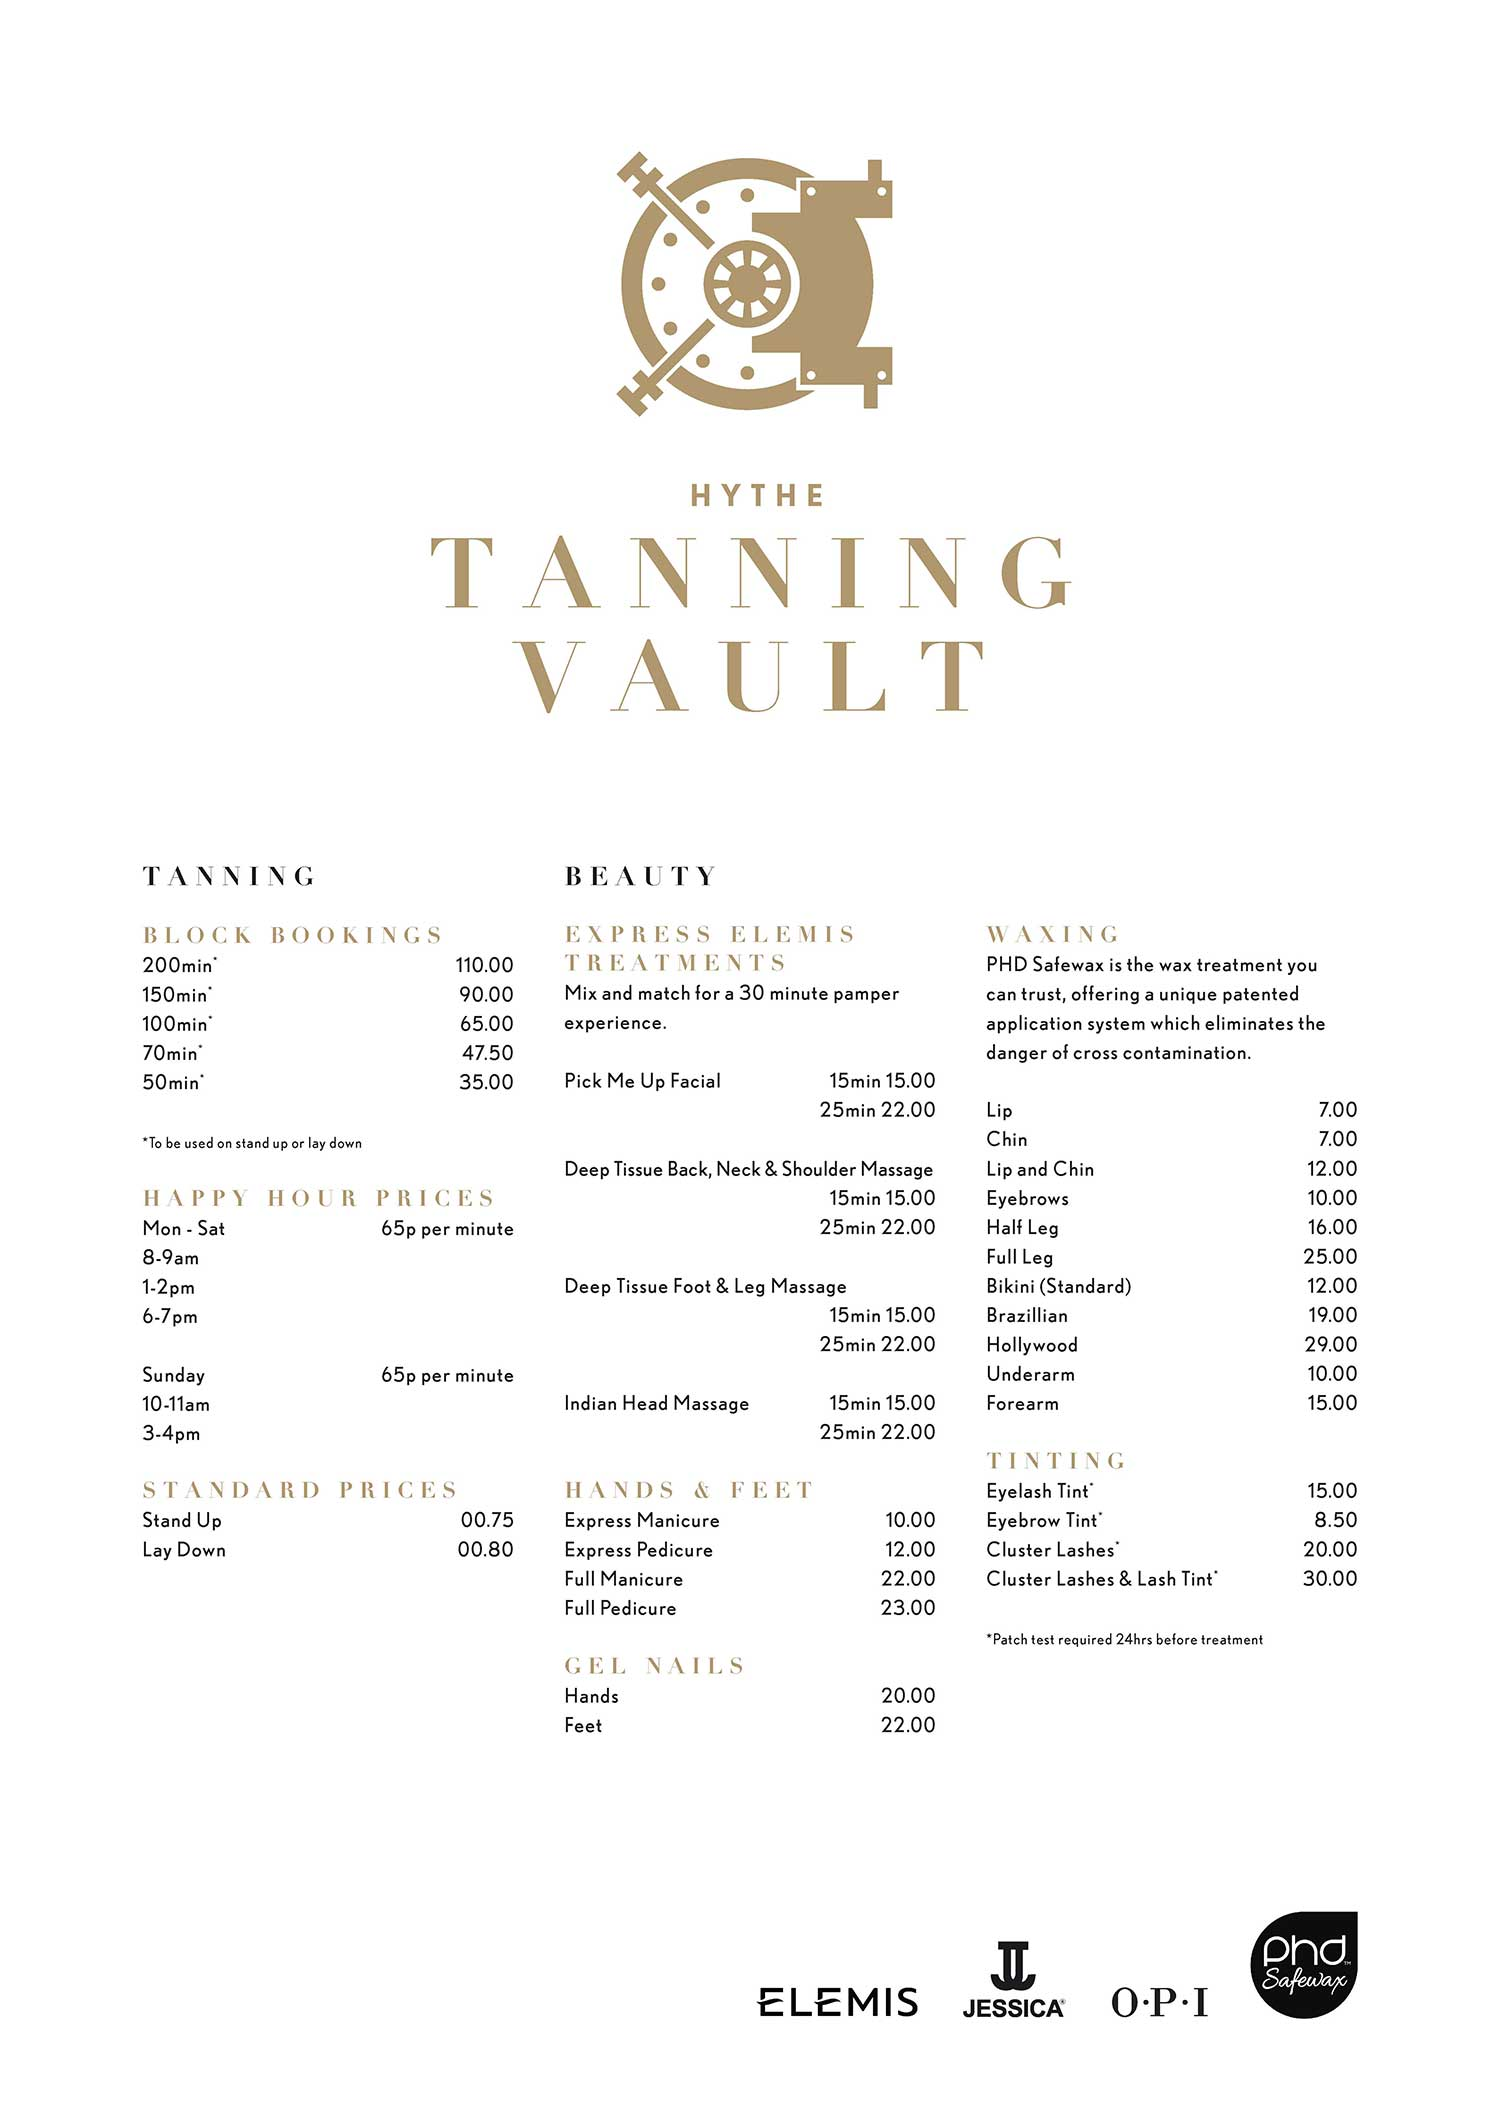 A1-Tanning-Vault-Prices Hythe Kent